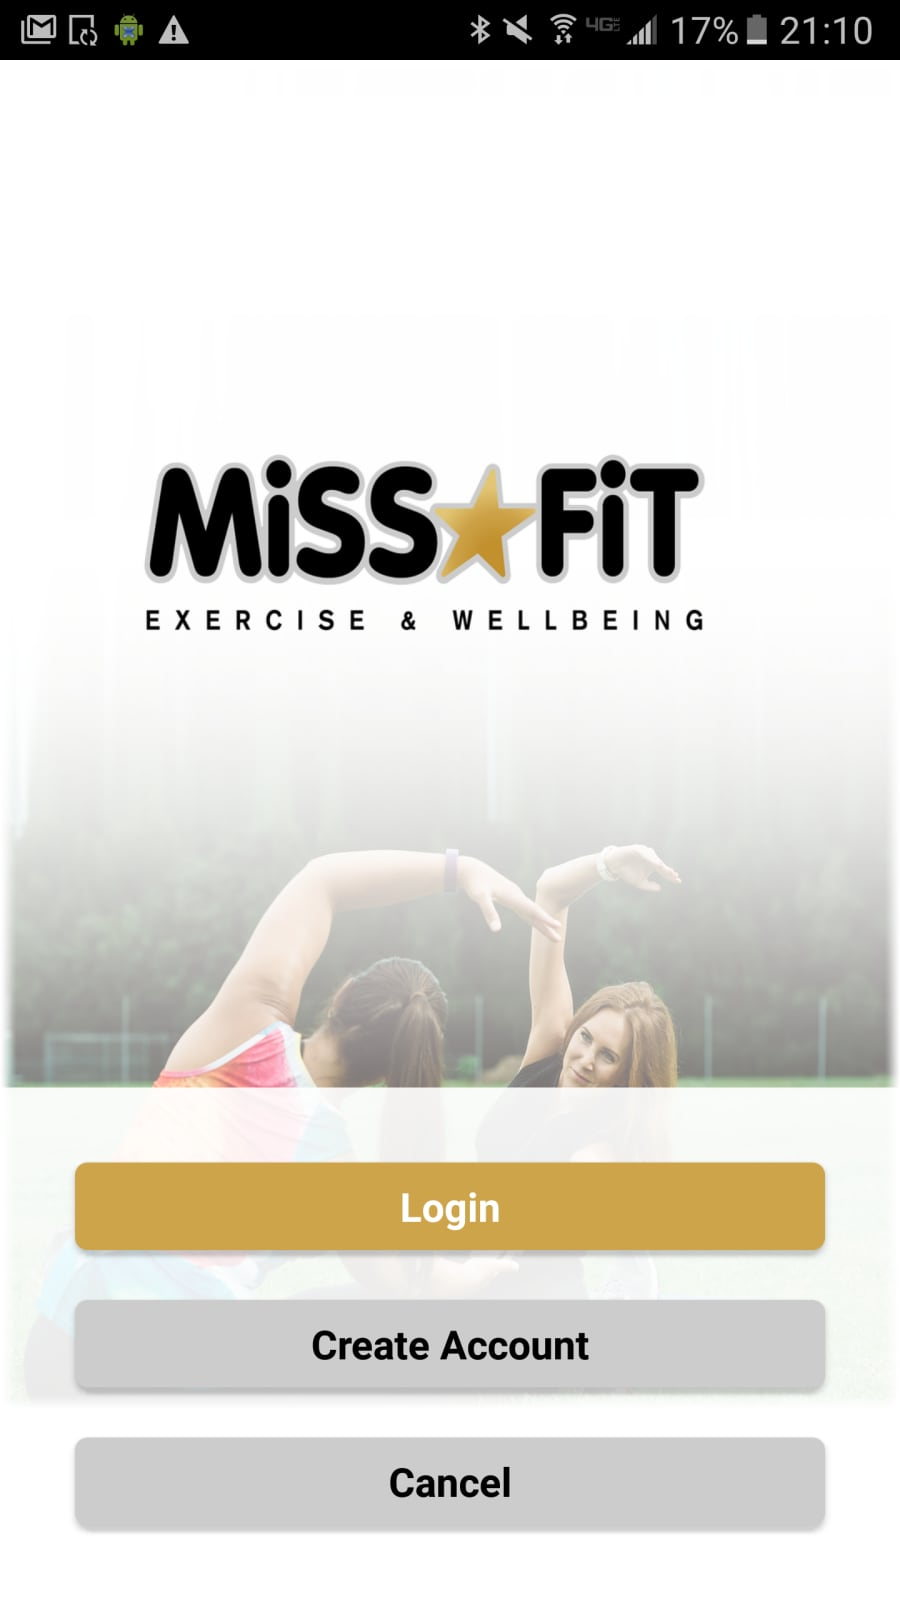 Miss Fit Exercise and Wellbeing App Homescreen